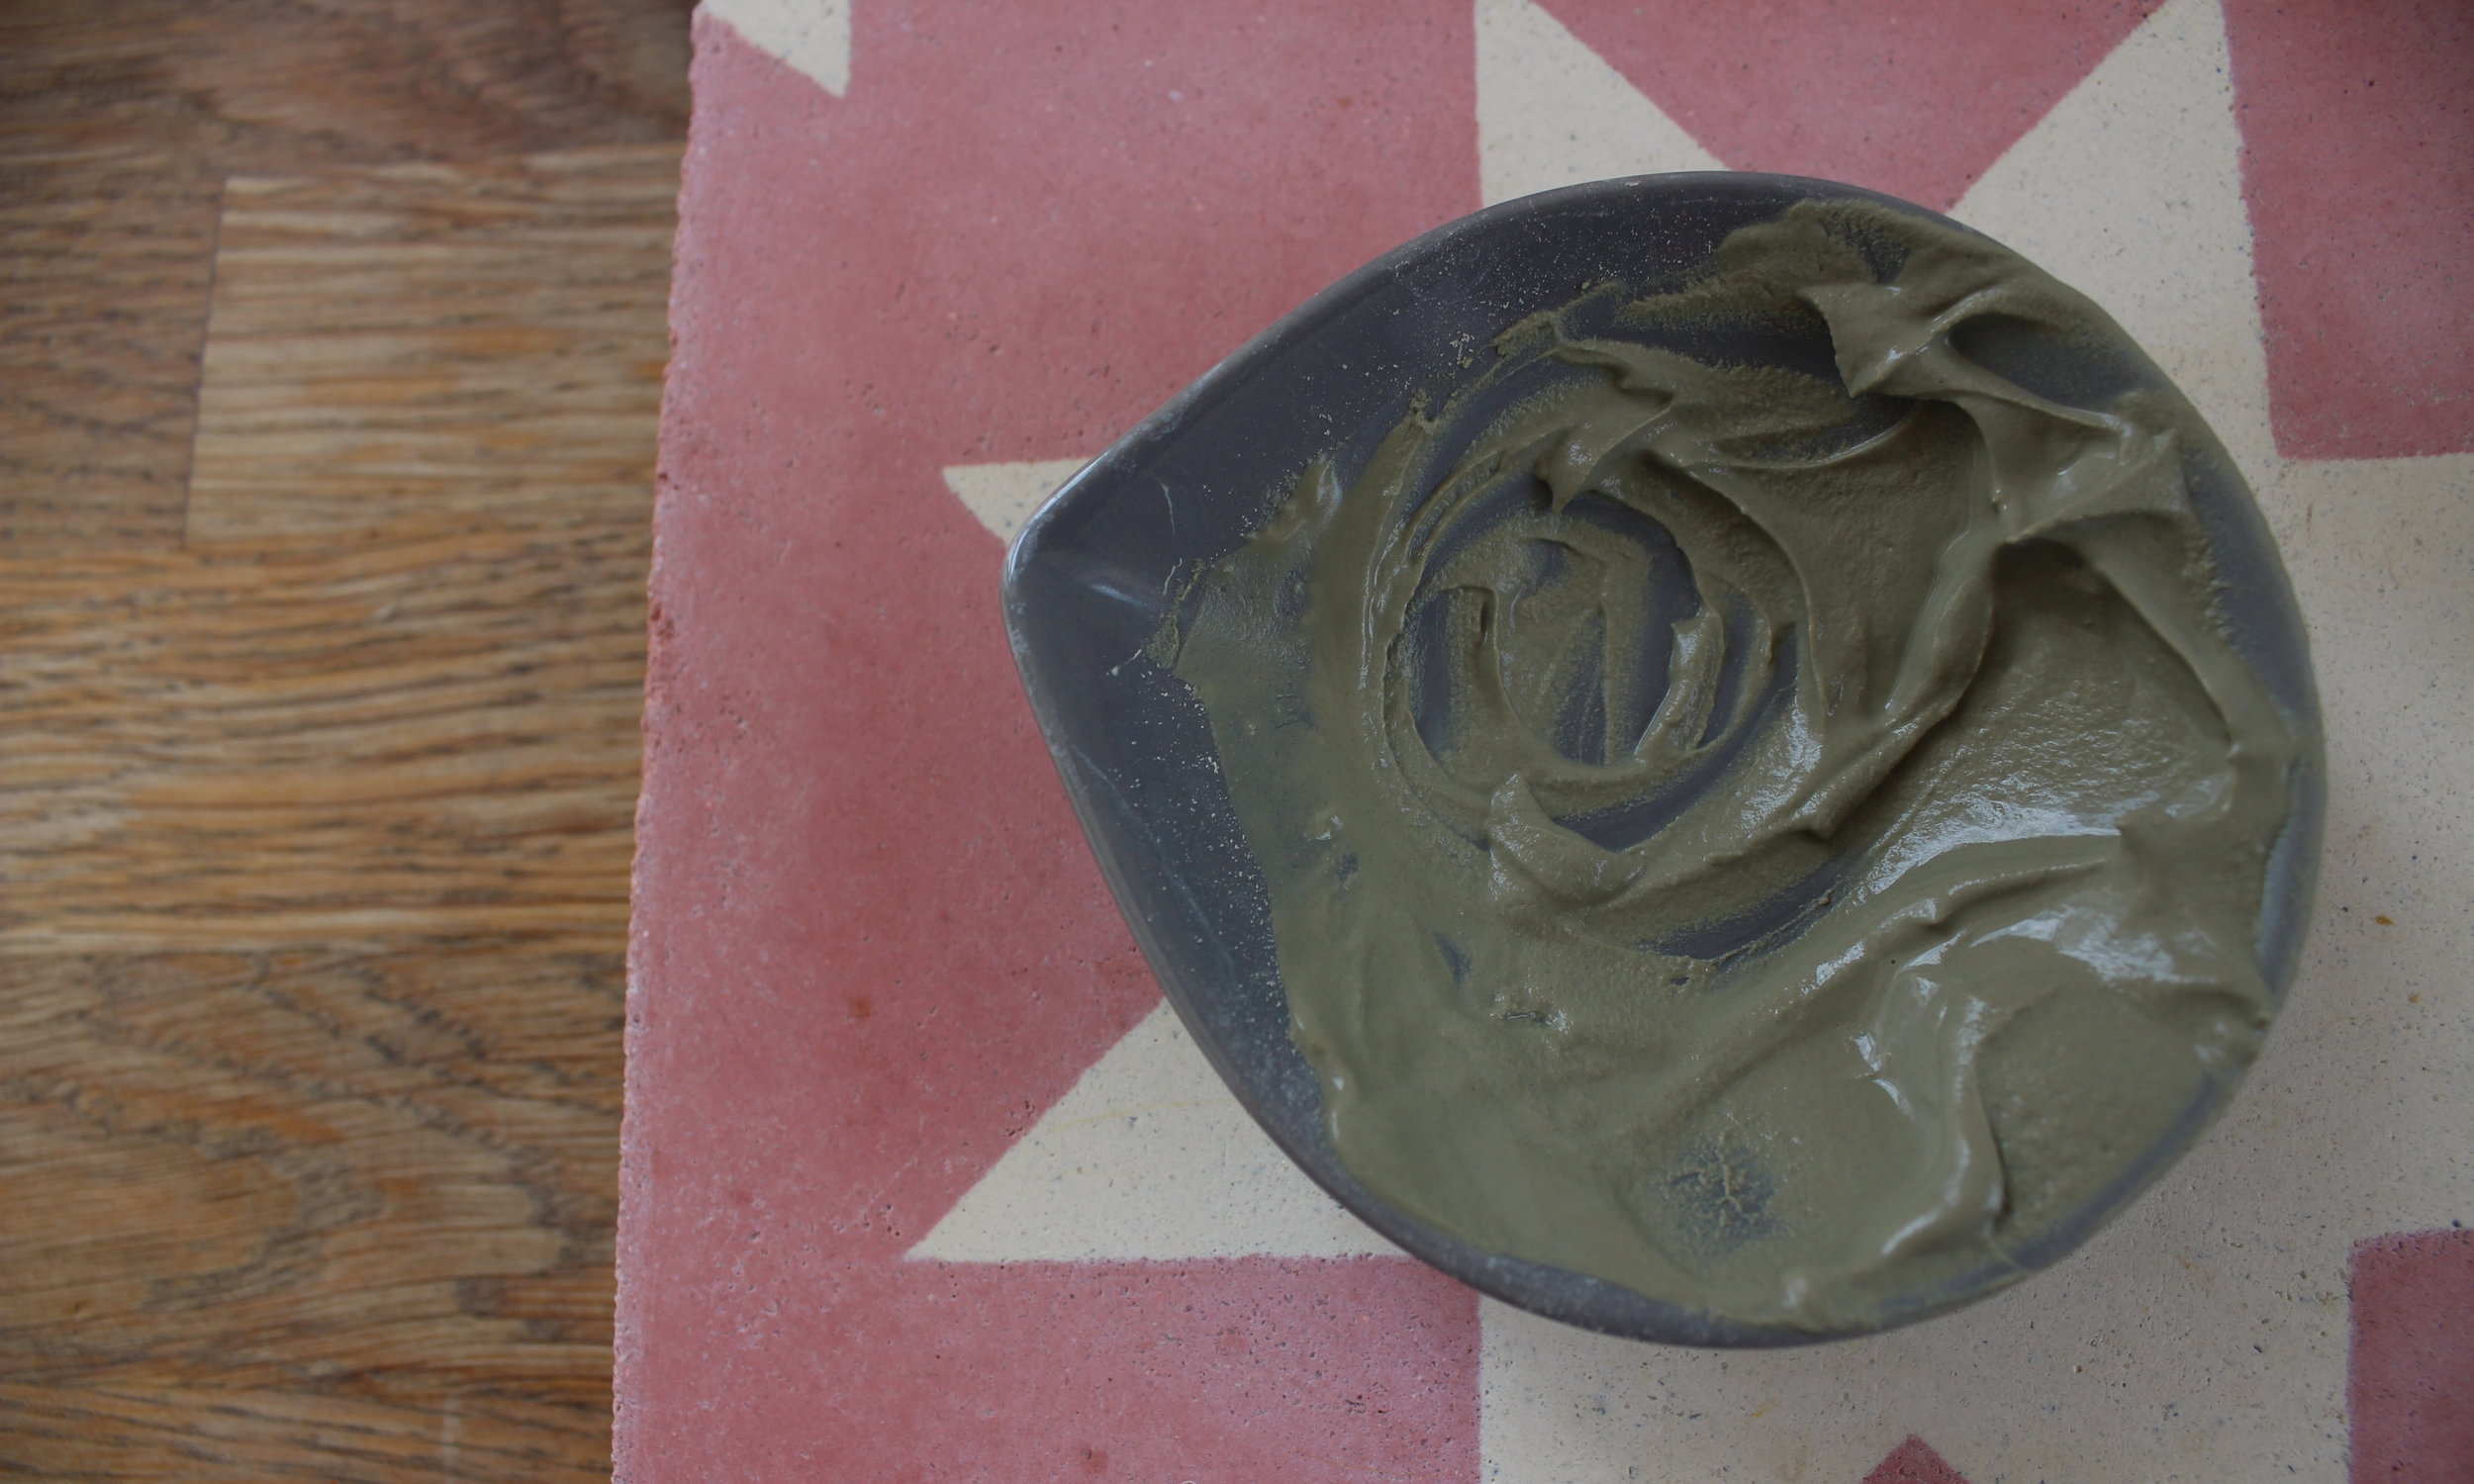 Mixing Umbrian clay with orange blossom water